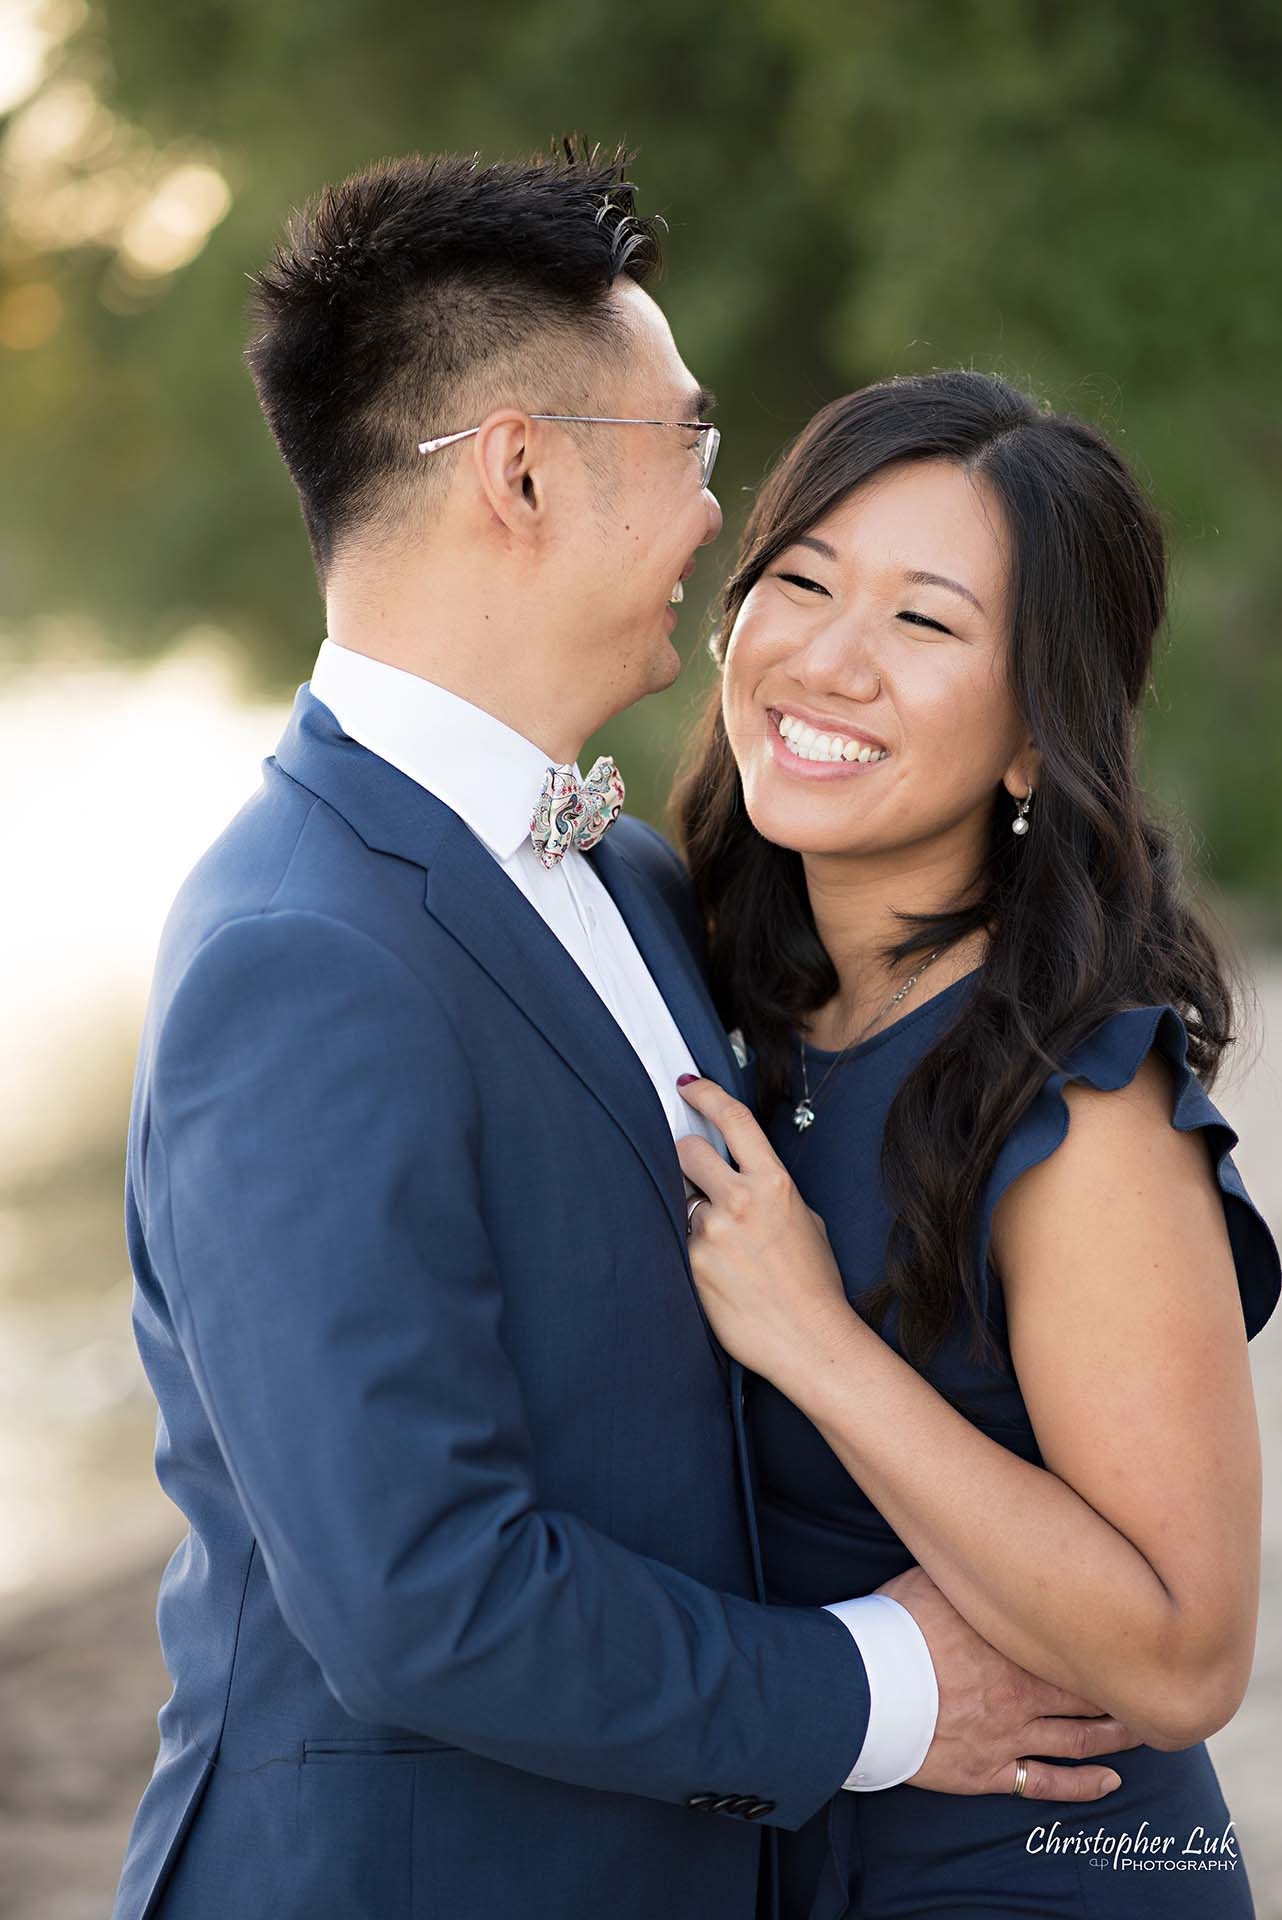 Christopher Luk Toronto Wedding Photographer - Engagement Photography - Sunnyside Pavilion Park Beach Boardwalk Toronto - Bride and Groom Natural Candid Photojournalistic Hug Smile Trees Close